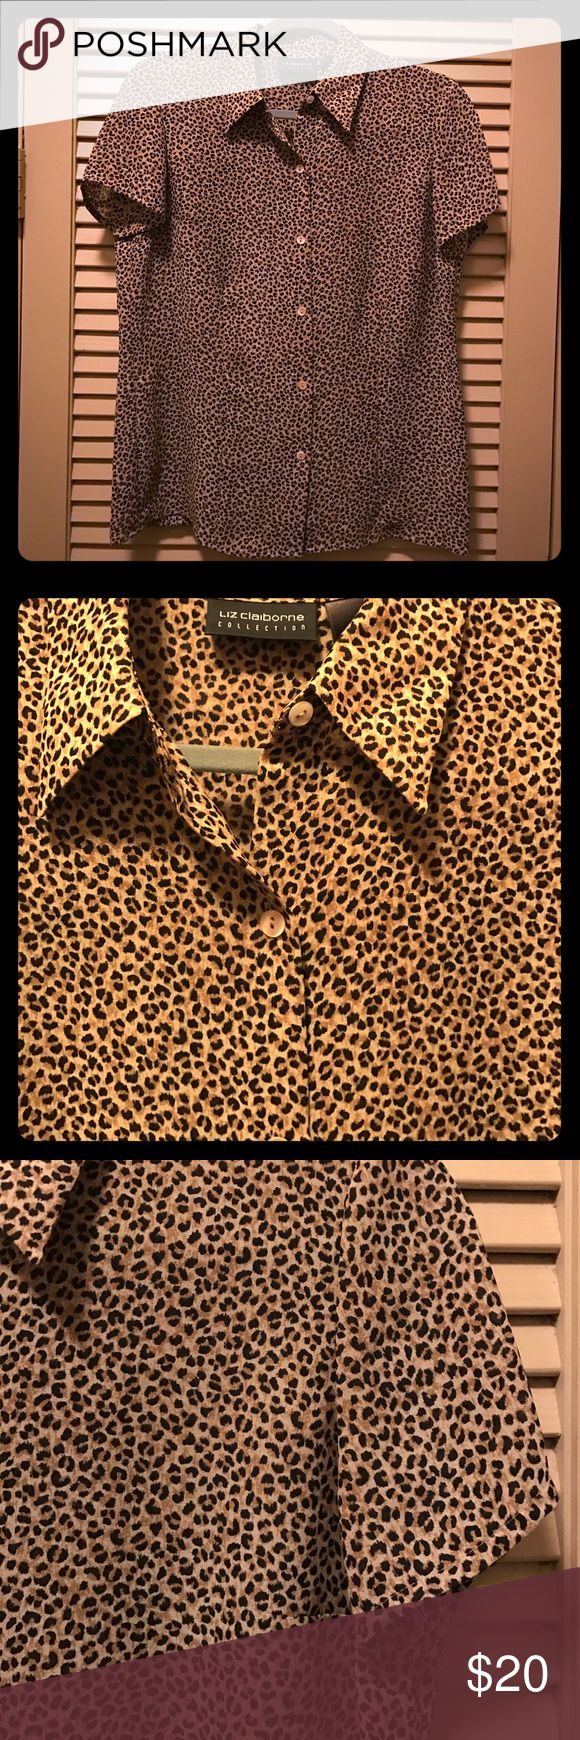 Animal print short sleeved sheer tailored blouse Reposhed item as I misunderstood sizing. Wonderful little blouse with tiny and classic looking animal print. Lovely flow would look great with black or neutral tone cami beneath it. Liz Claiborne Tops Blouses